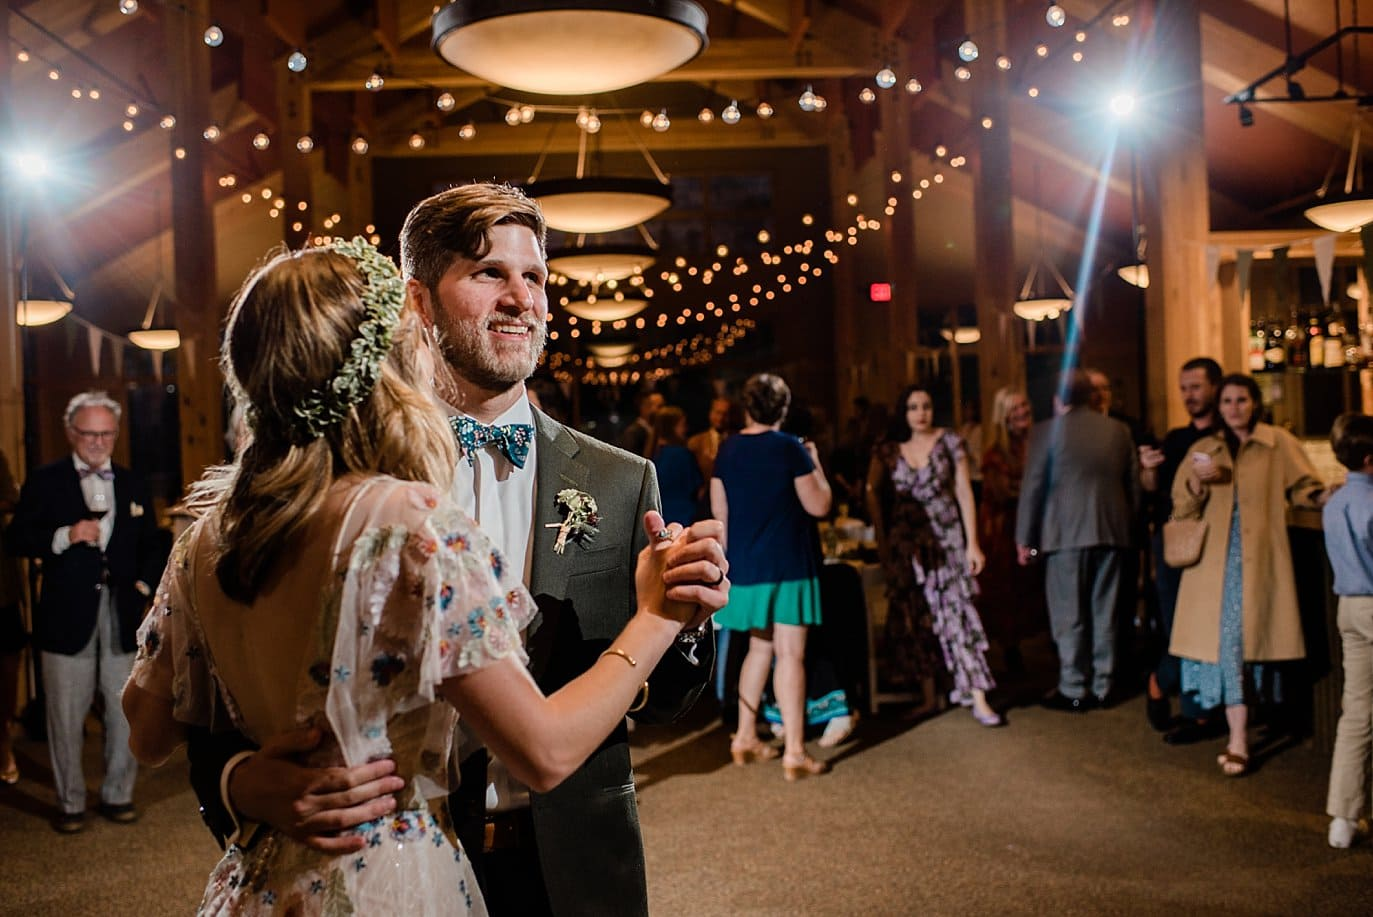 bride and groom first dance at Black Mountain lodge wedding by Keystone wedding photographer Jennie Crate Photographer